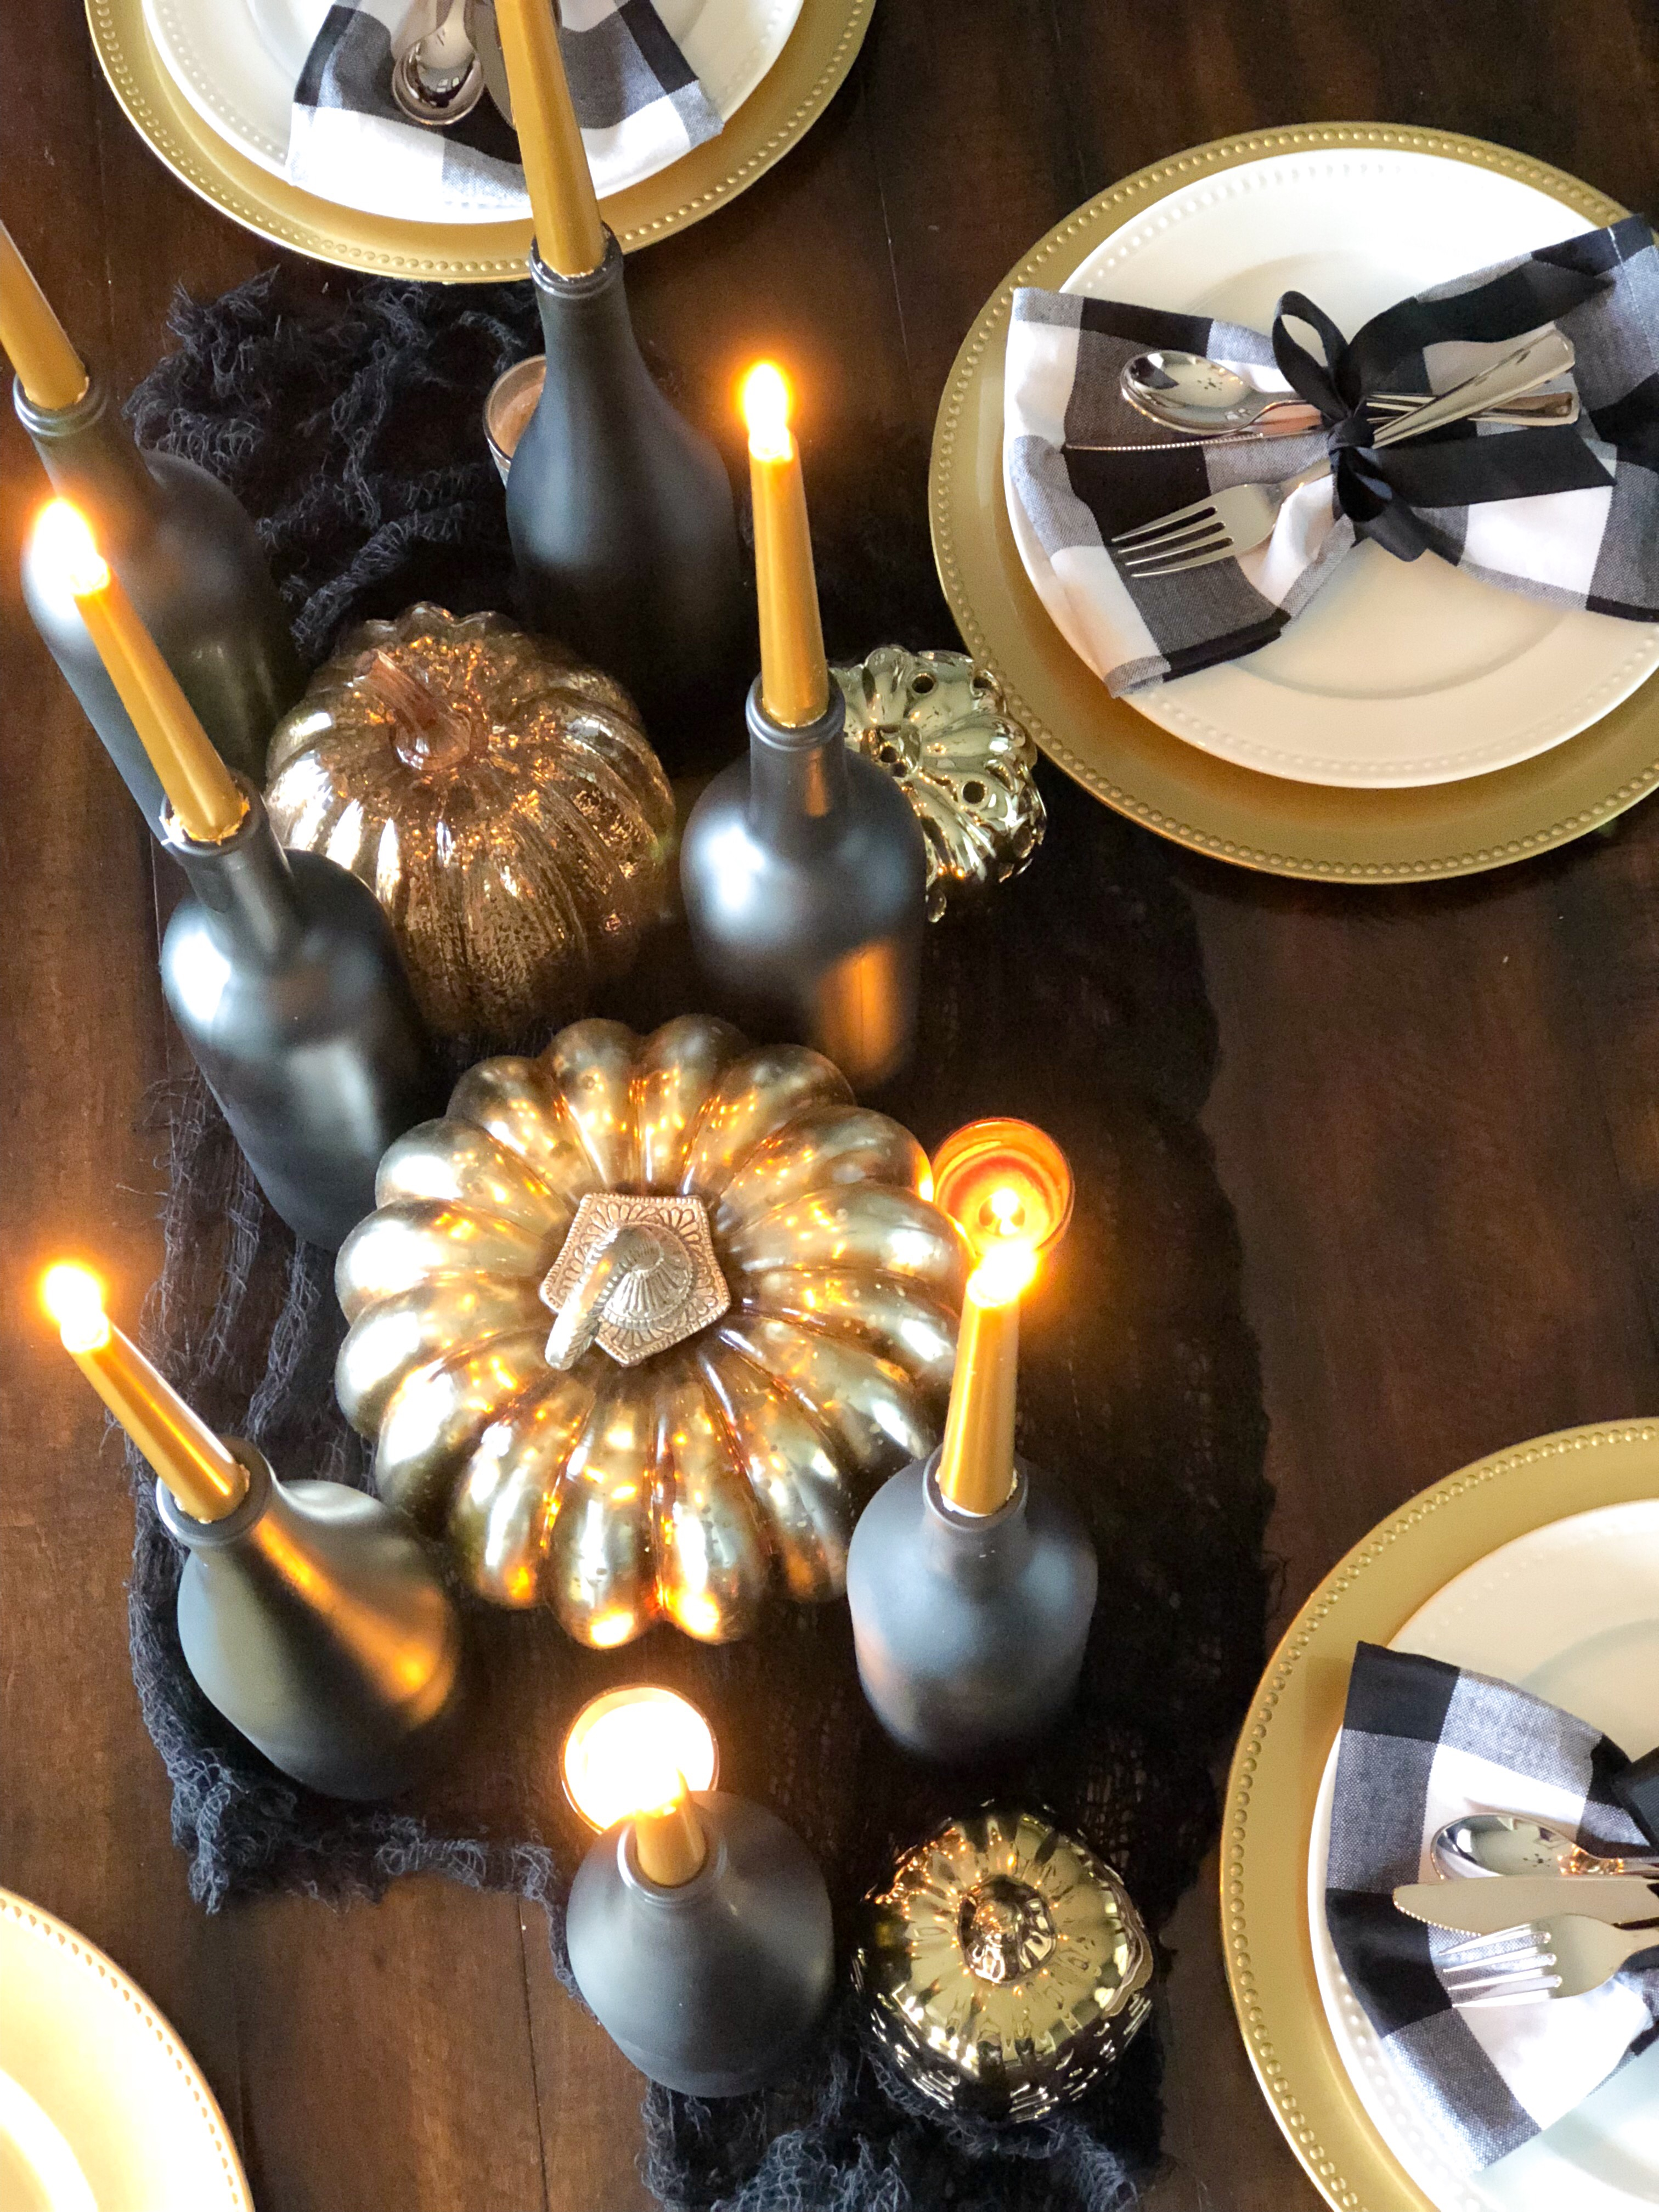 Matte Black Painted Wine Bottles for candle holders with gold candlesticks and gold pumpkins